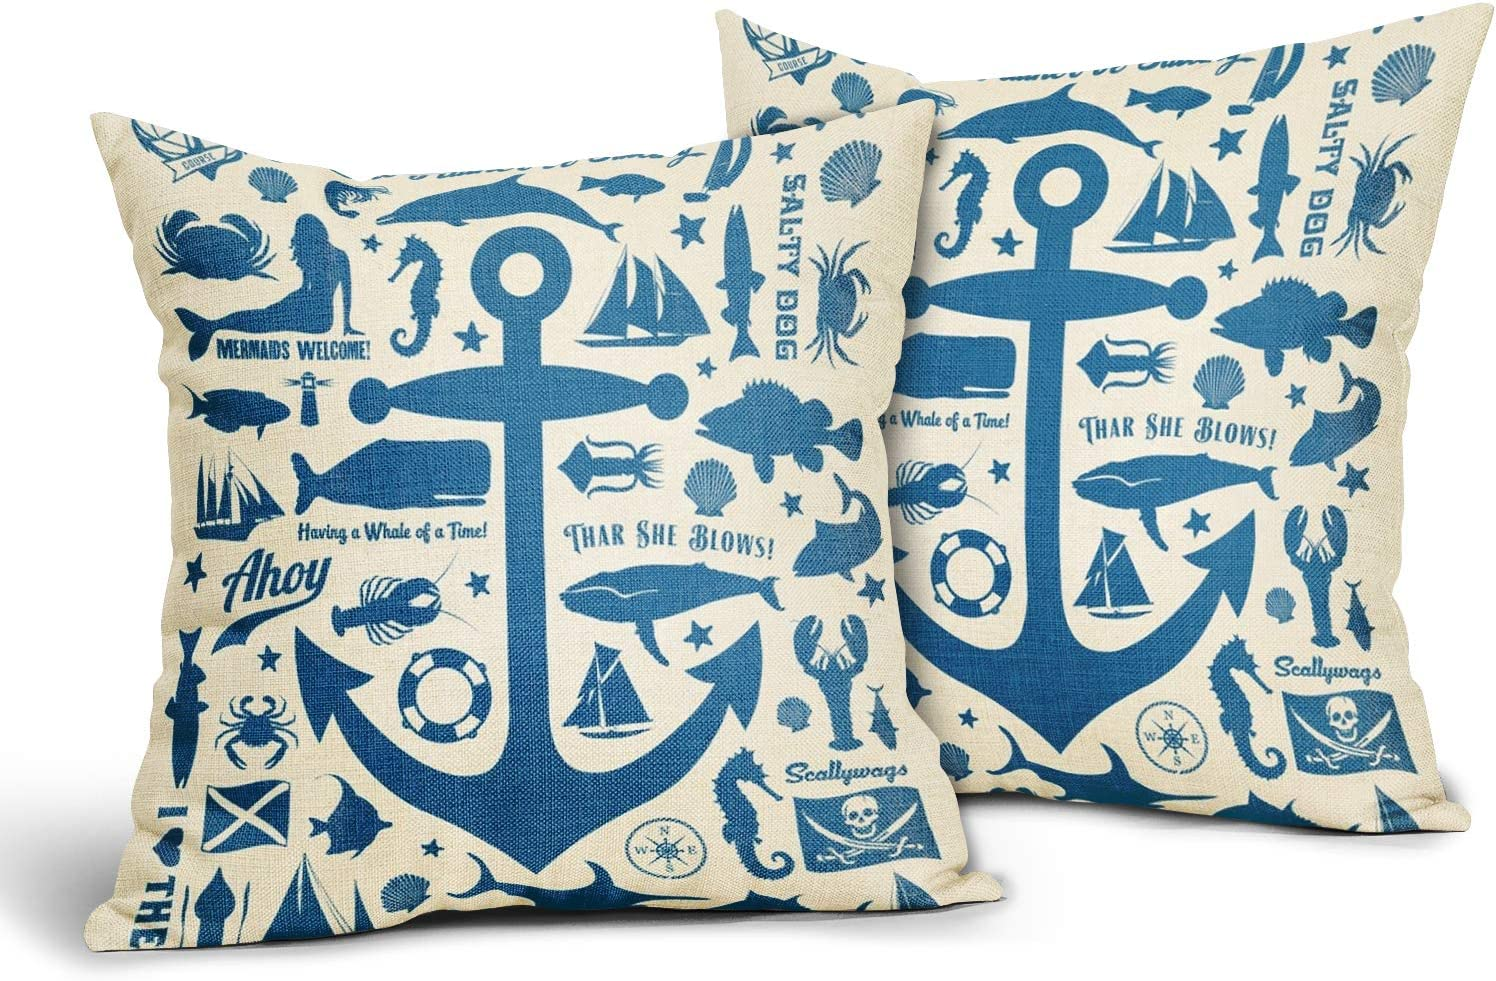 Kawani Set of 2 Blue Nautical Anchor Throw Pillow Covers 18x18 Inch Soft Cotton Linen Sea Turtle Pillowcase Farmhouse Home Nautical Decor Pillows Cover Gifts for Car Cabin Bed Couch Sofa Living Room